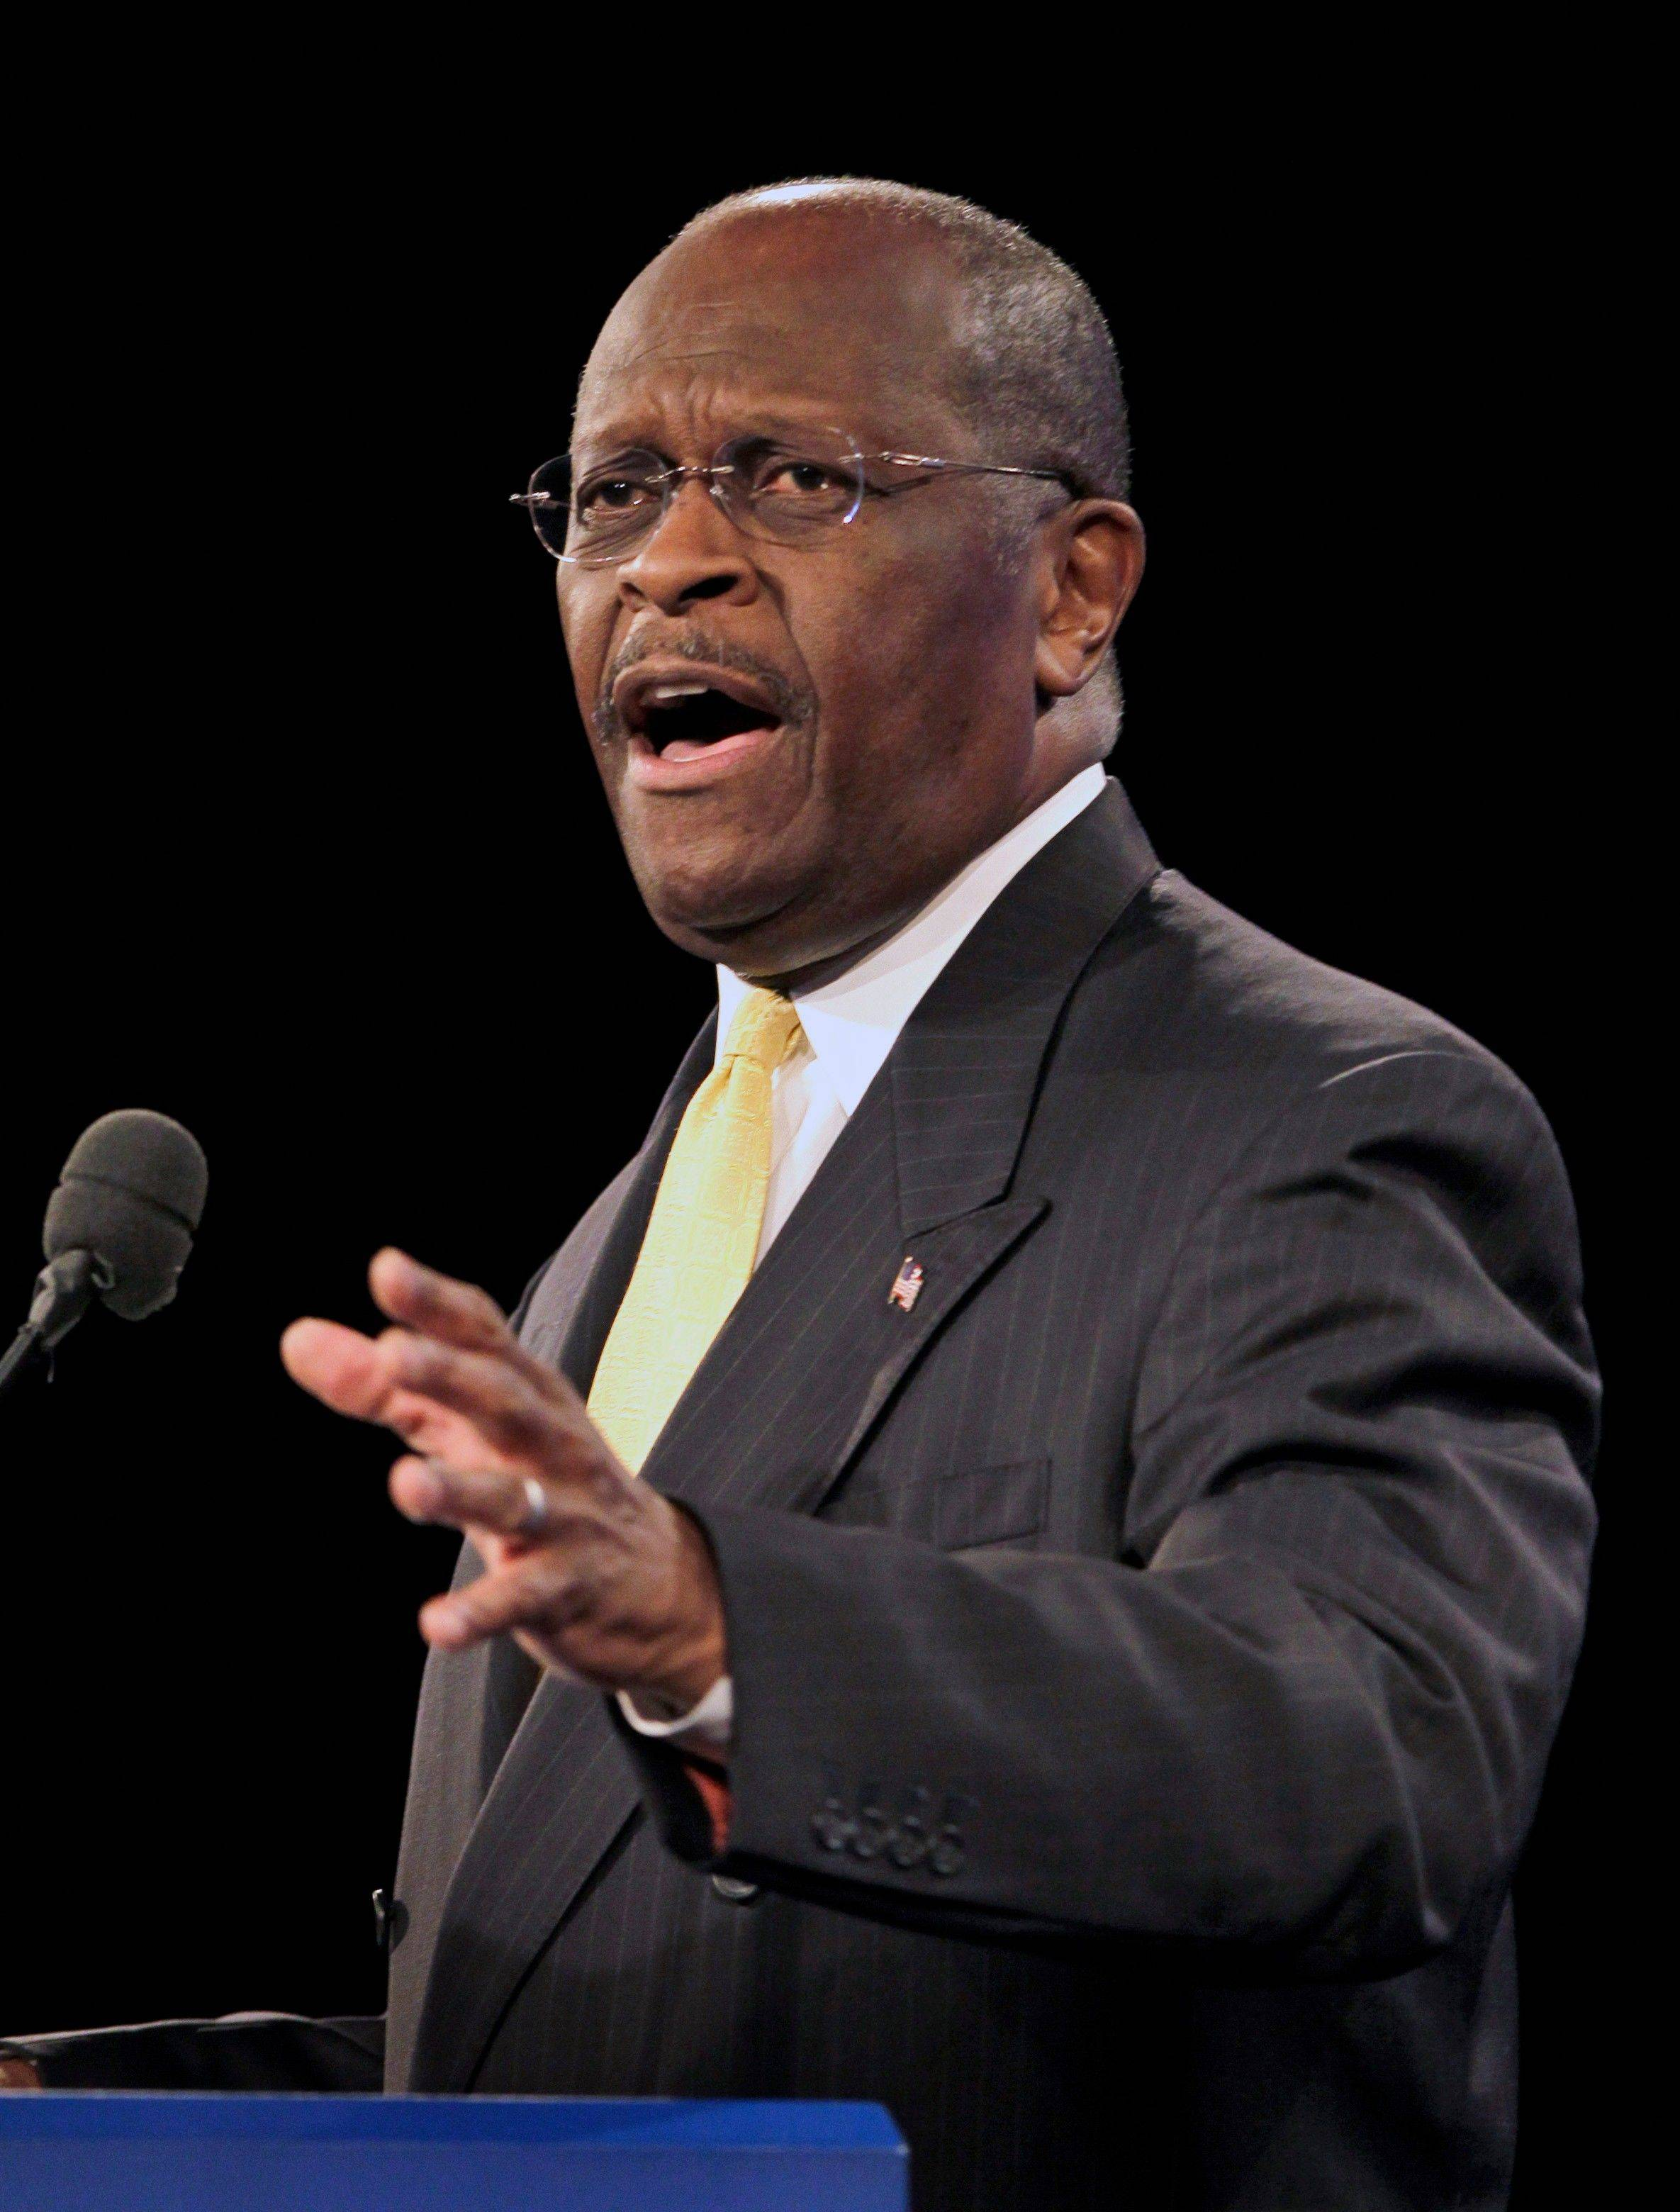 Cain gets 77% of straw poll votes at TeaCon in Schaumburg